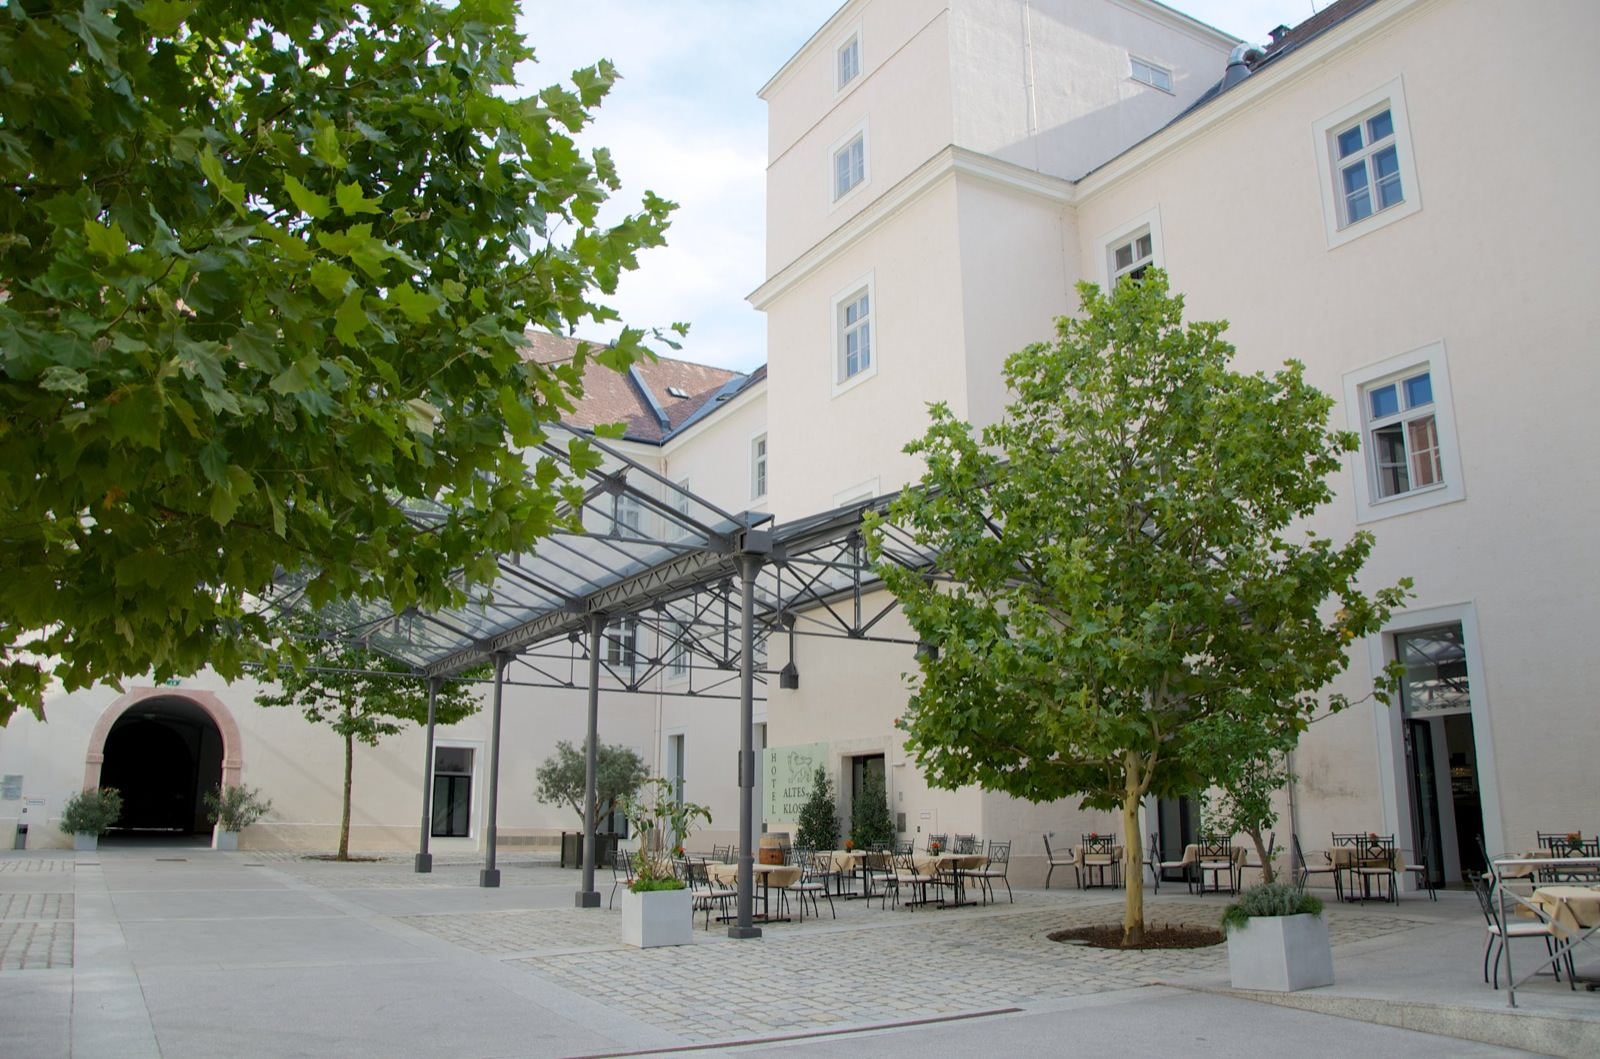 Hotel Altes Kloster